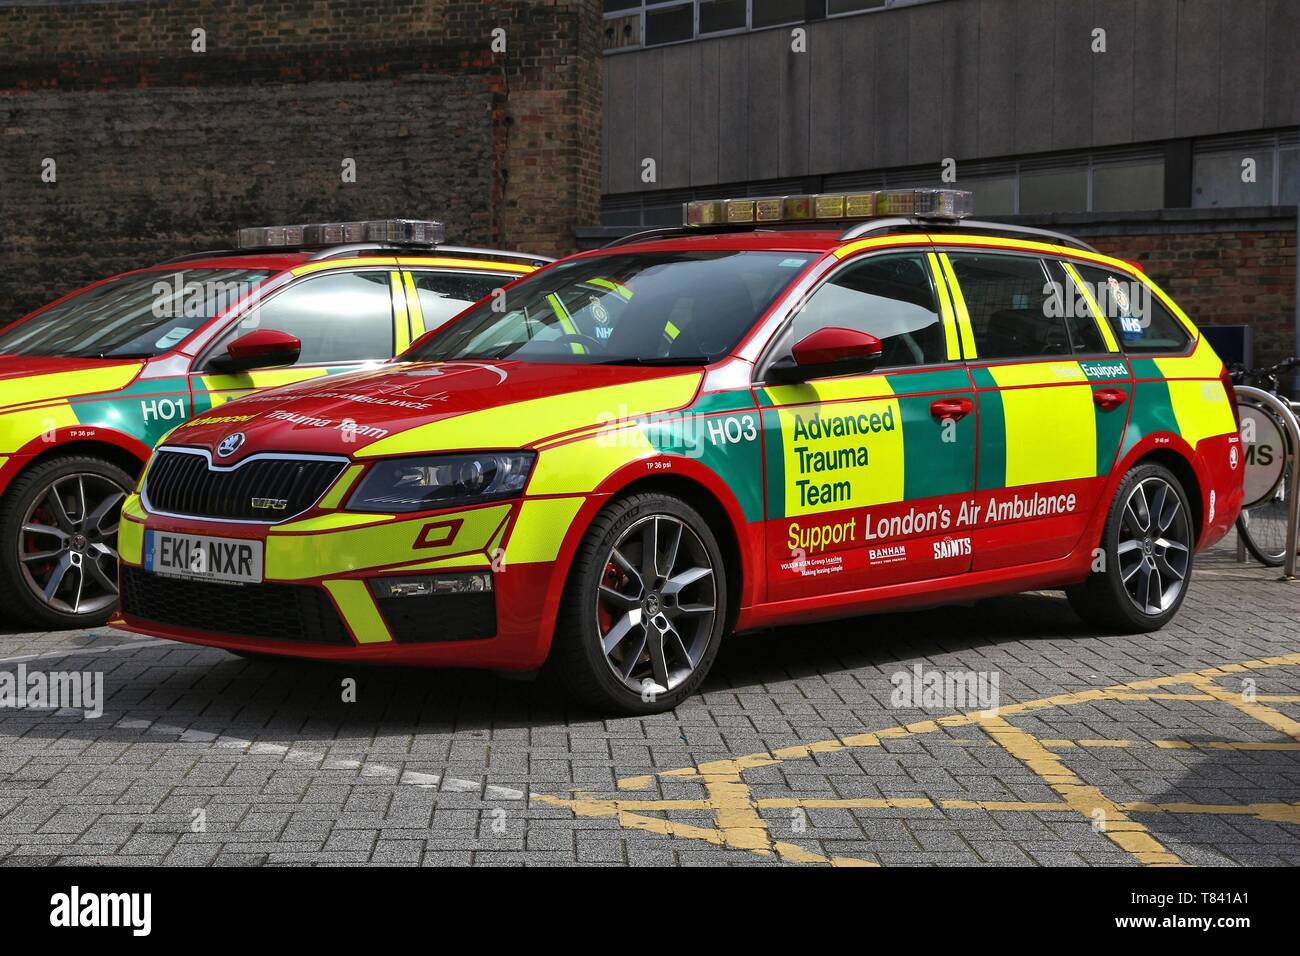 LONDON, UK - JULY 6, 2016: Advanced Trauma Team vehicle supporting London's Air Ambulance. It is part of National Health Service (NHS) in the UK. Stock Photo